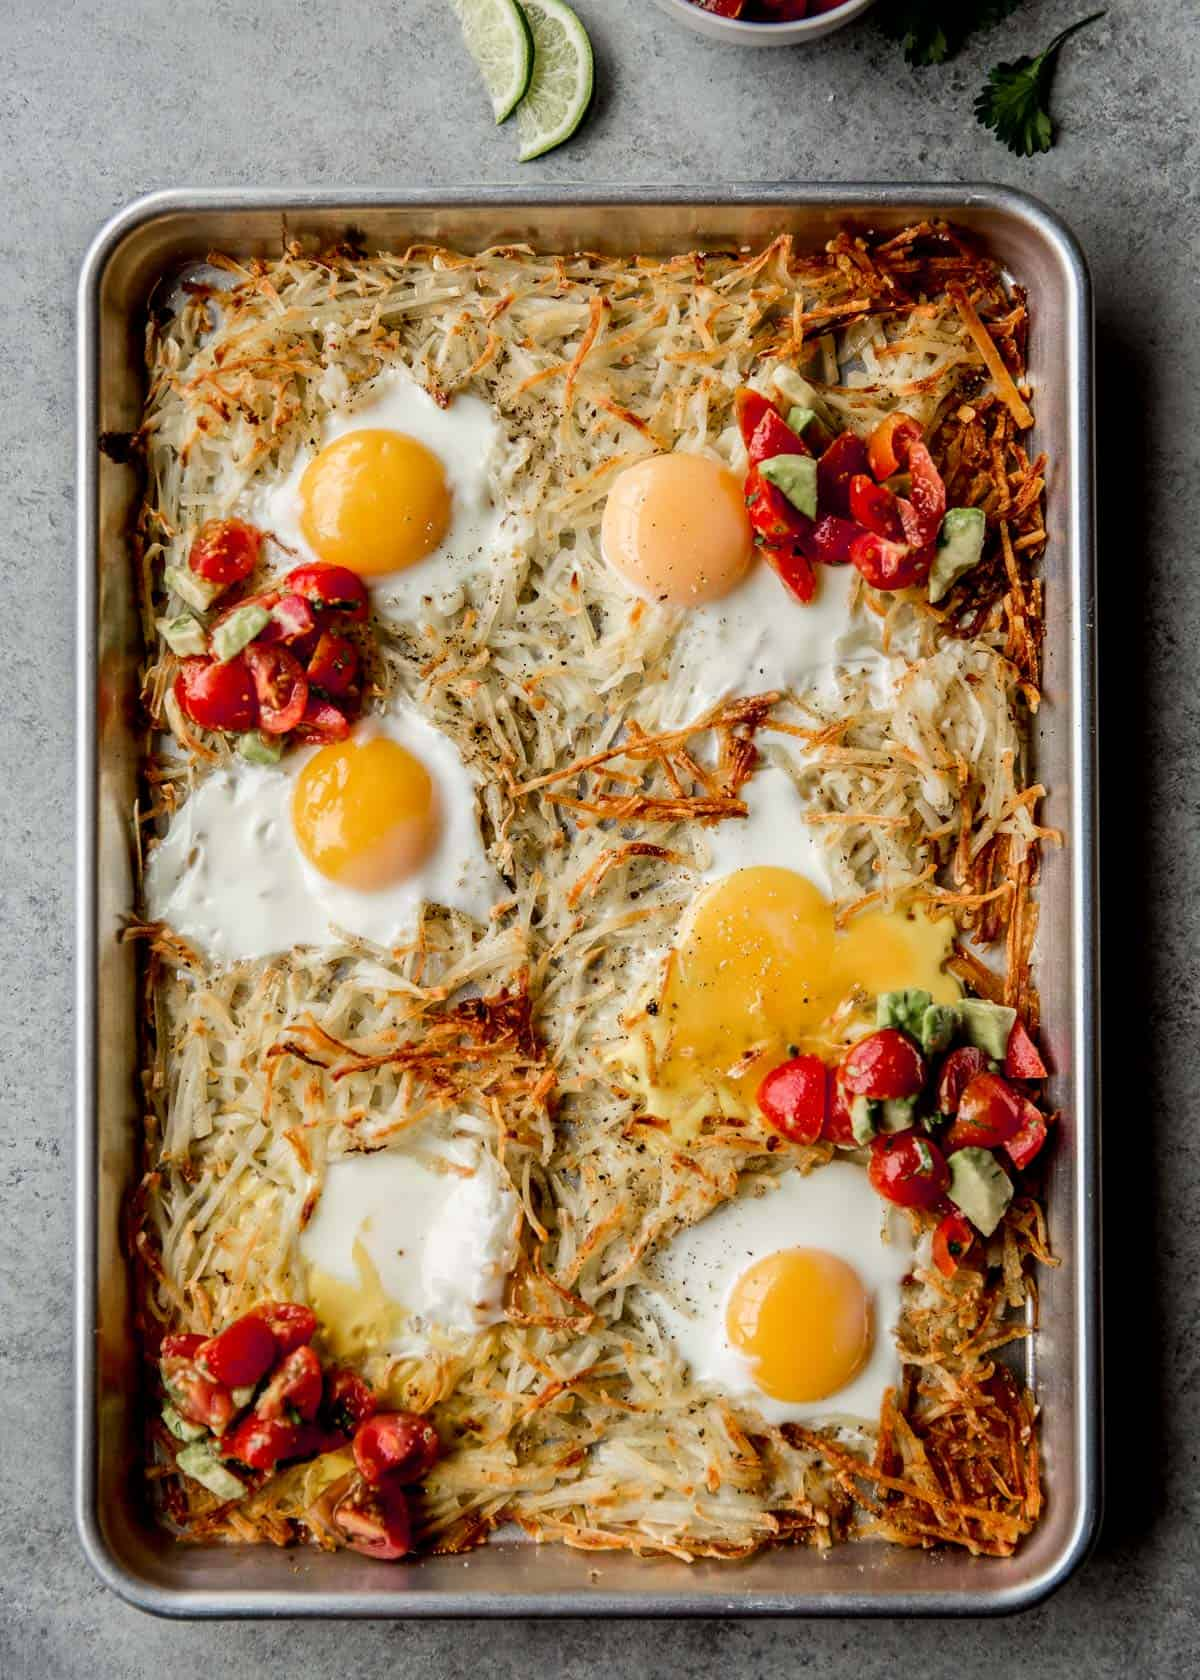 potatoes, eggs, and salsa on a parchment lined sheet pan